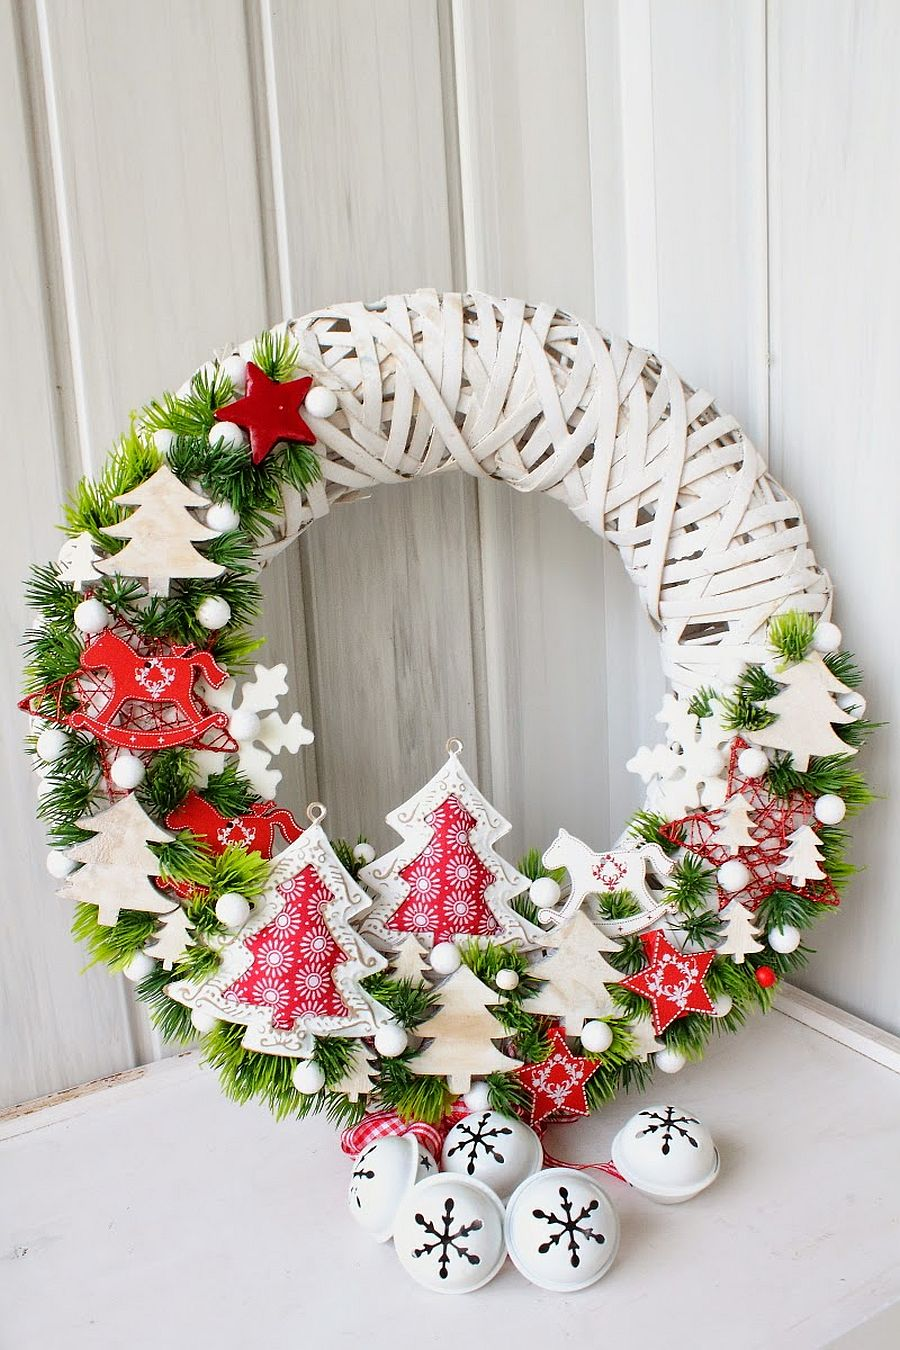 Perfect wreath to welcome the festive season with ample cheer!